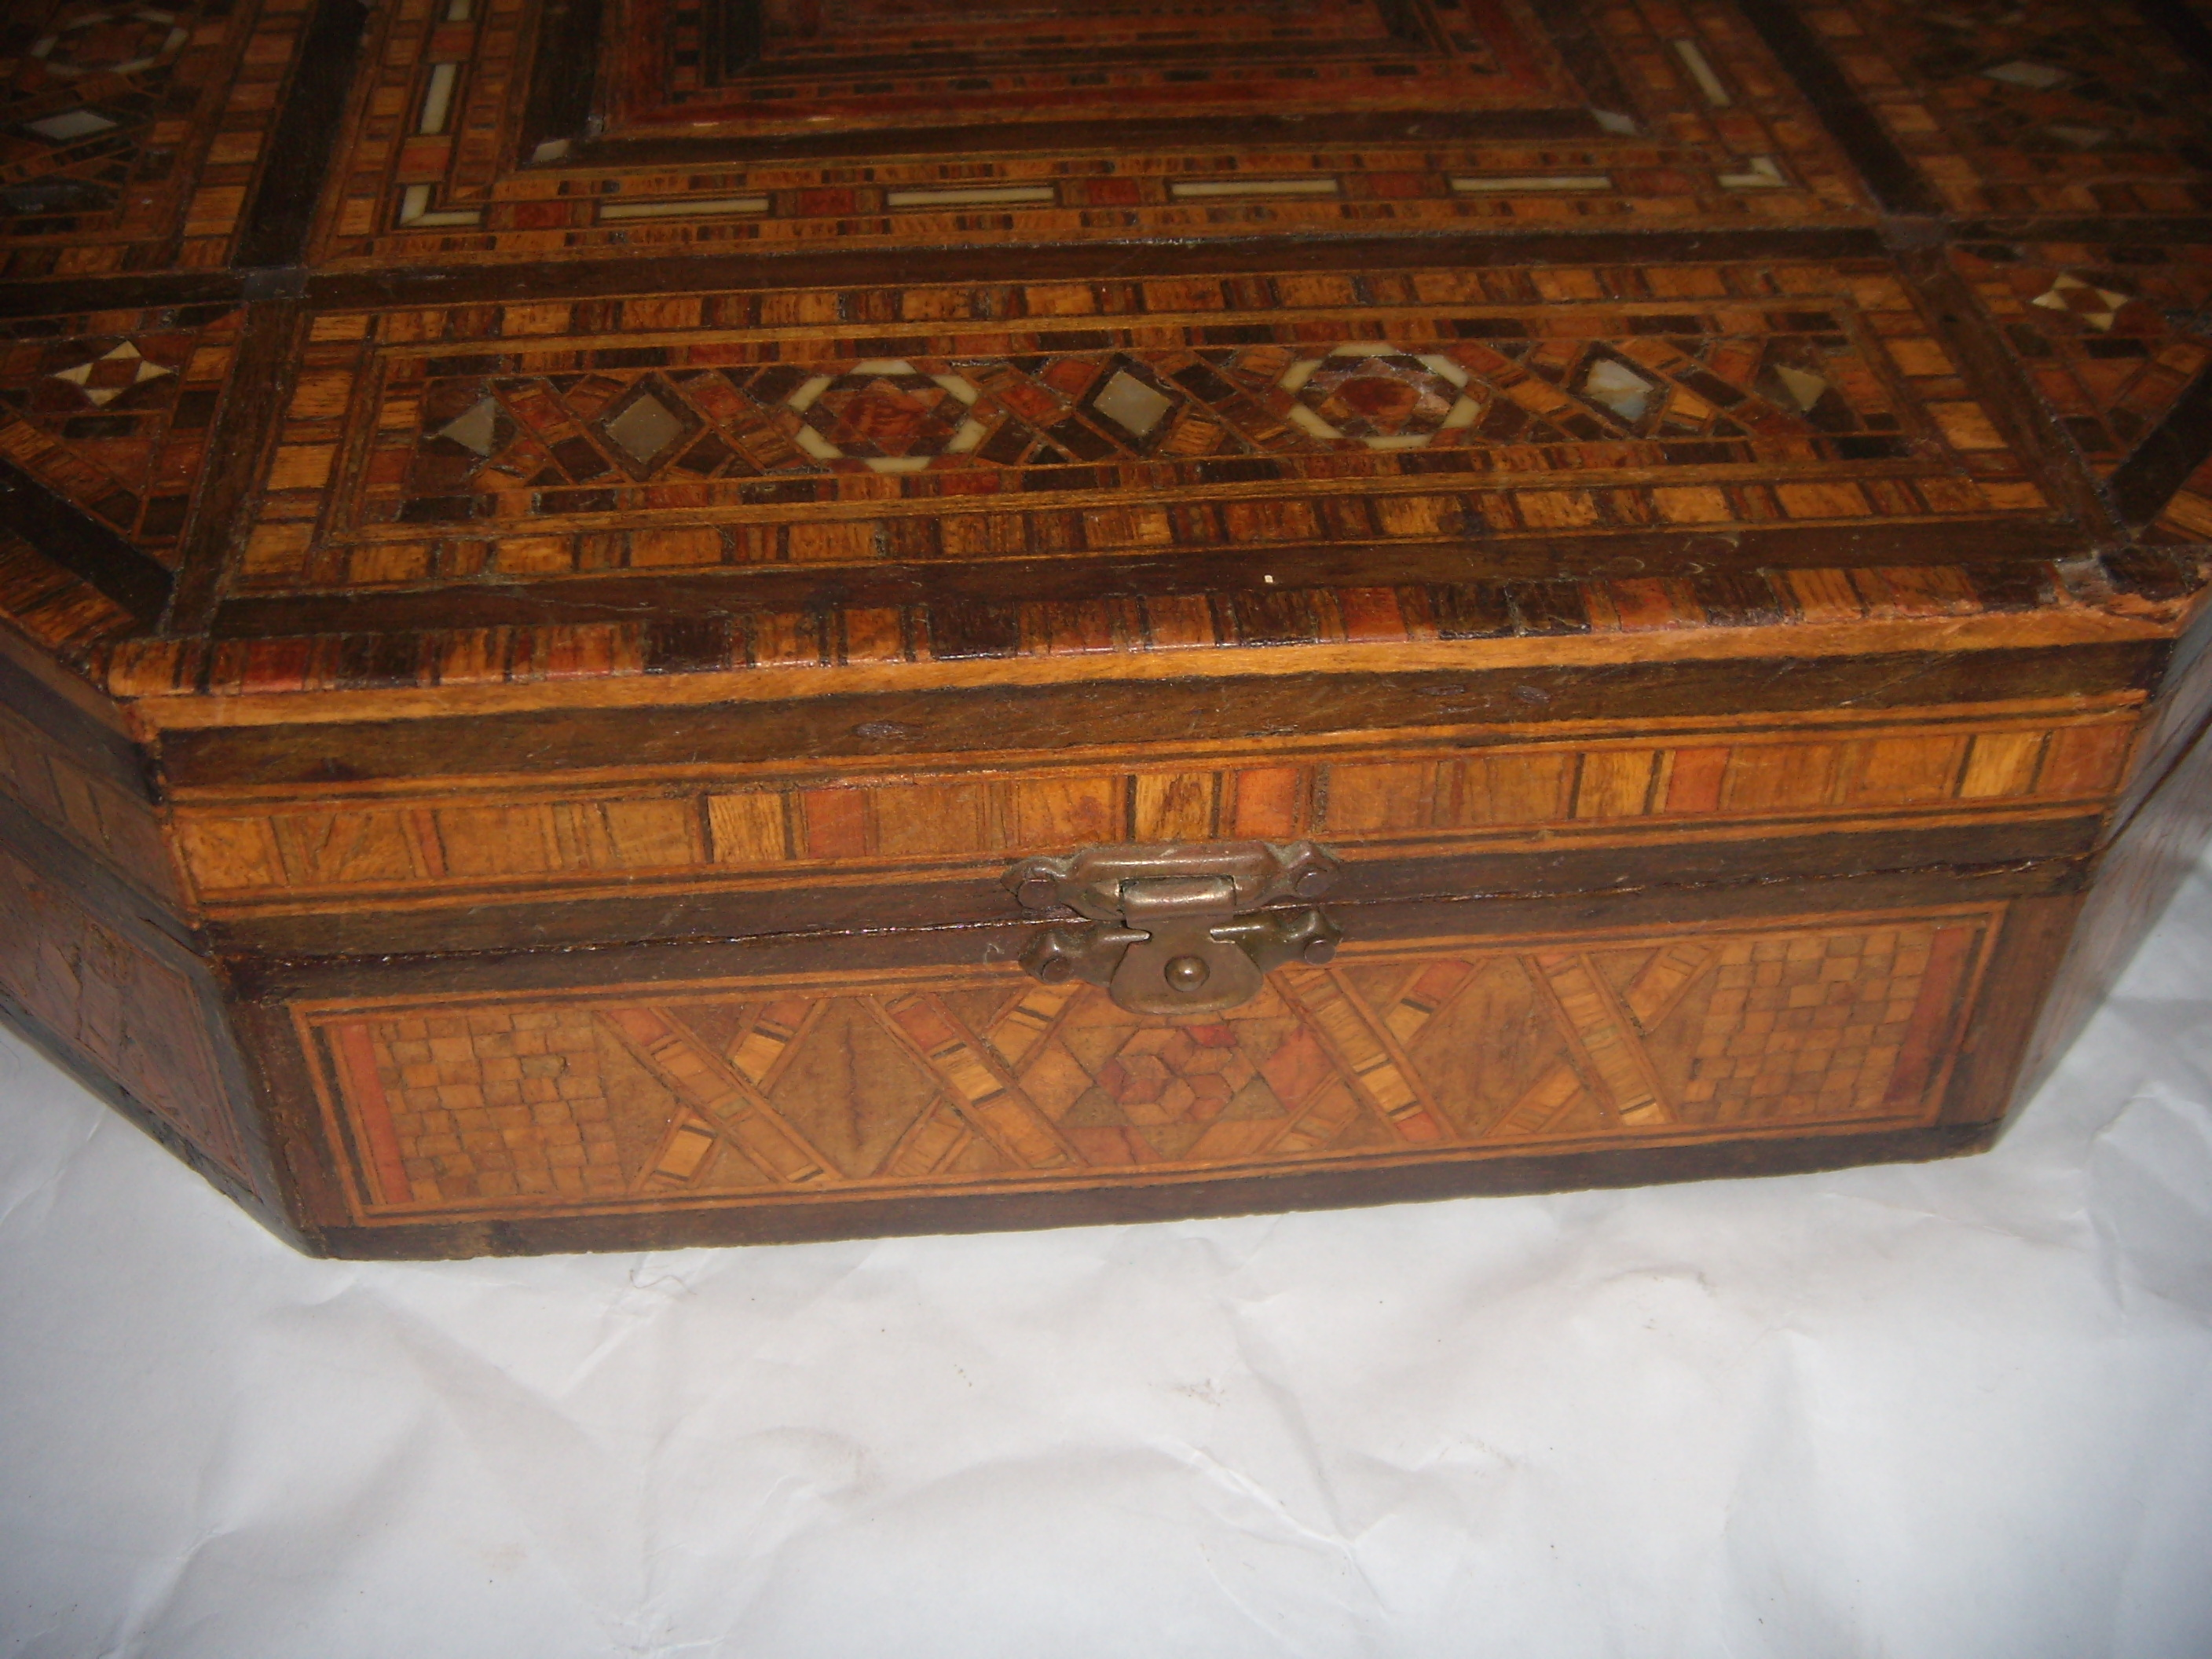 Antique Damascus Inlaid Jewelry Box Chairish